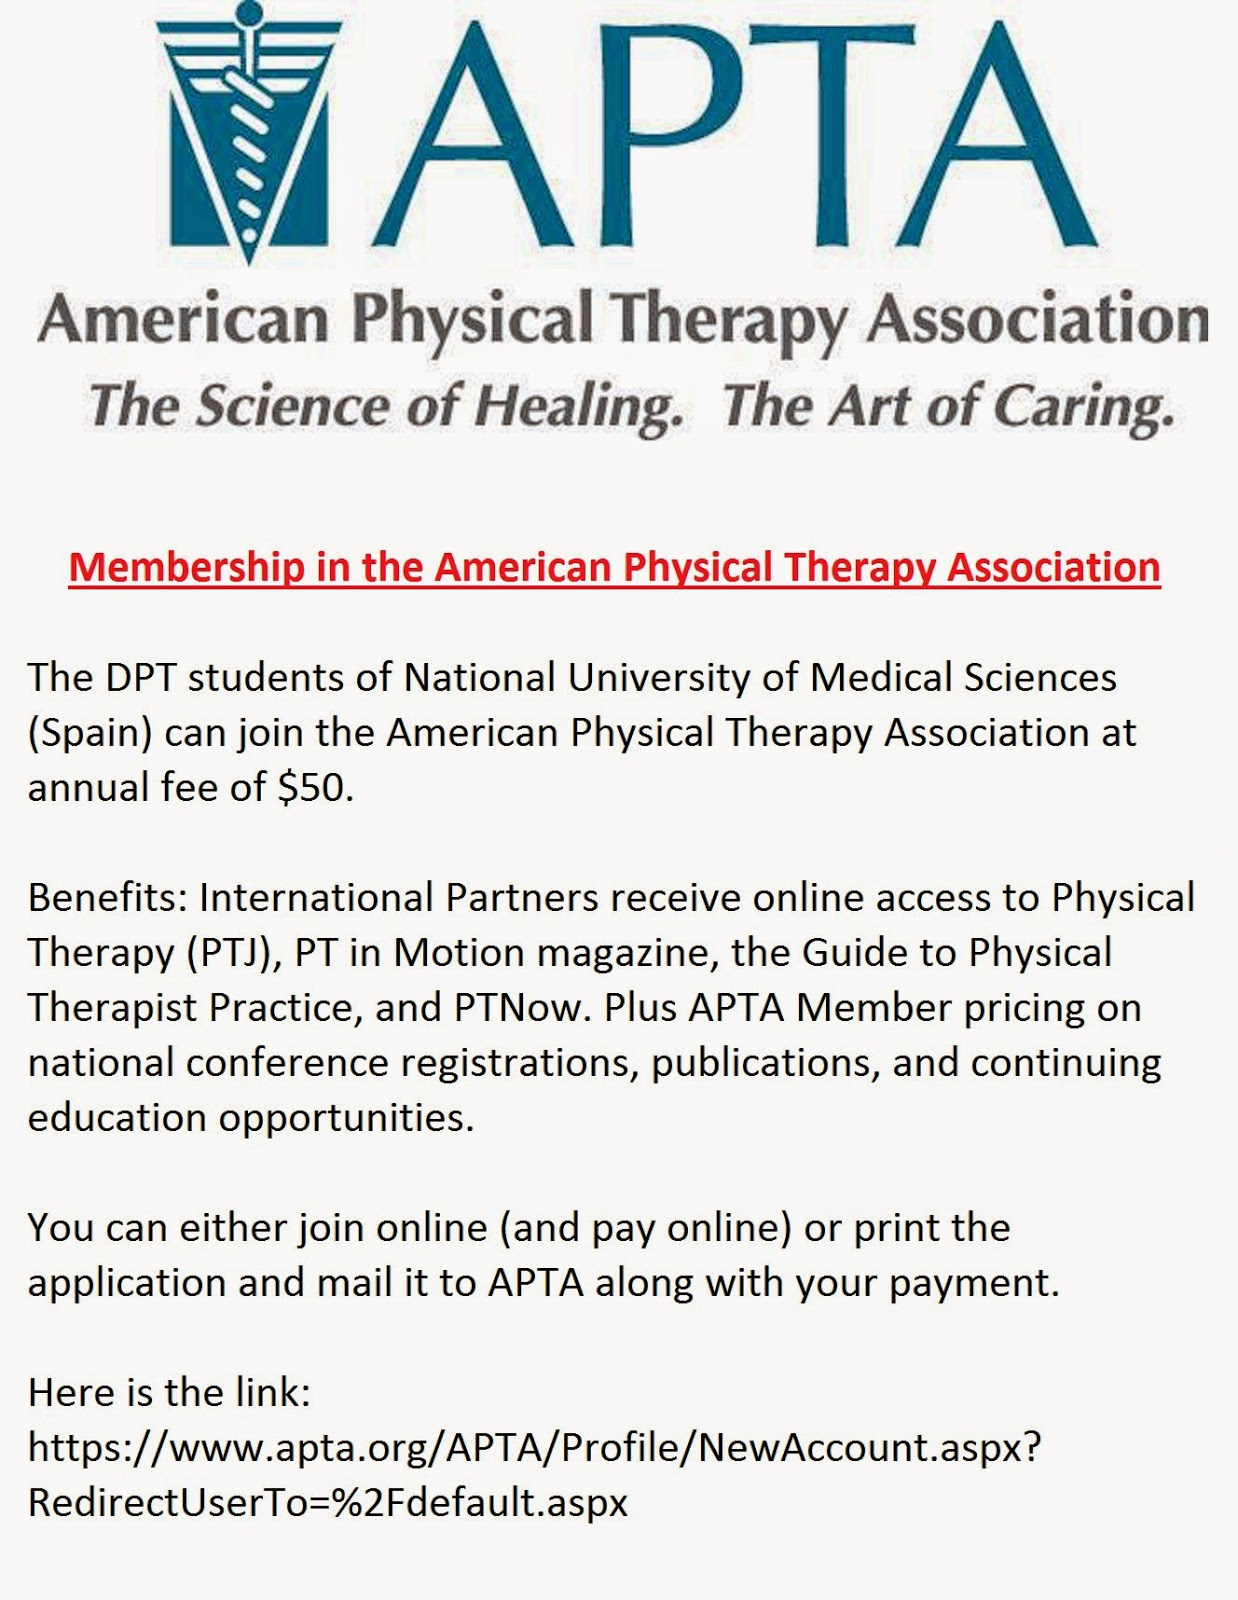 national university of medical sciences spain membership in the rh nationaluniversityofmedicalsciences blogspot com apta guide to physical therapy practice patterns